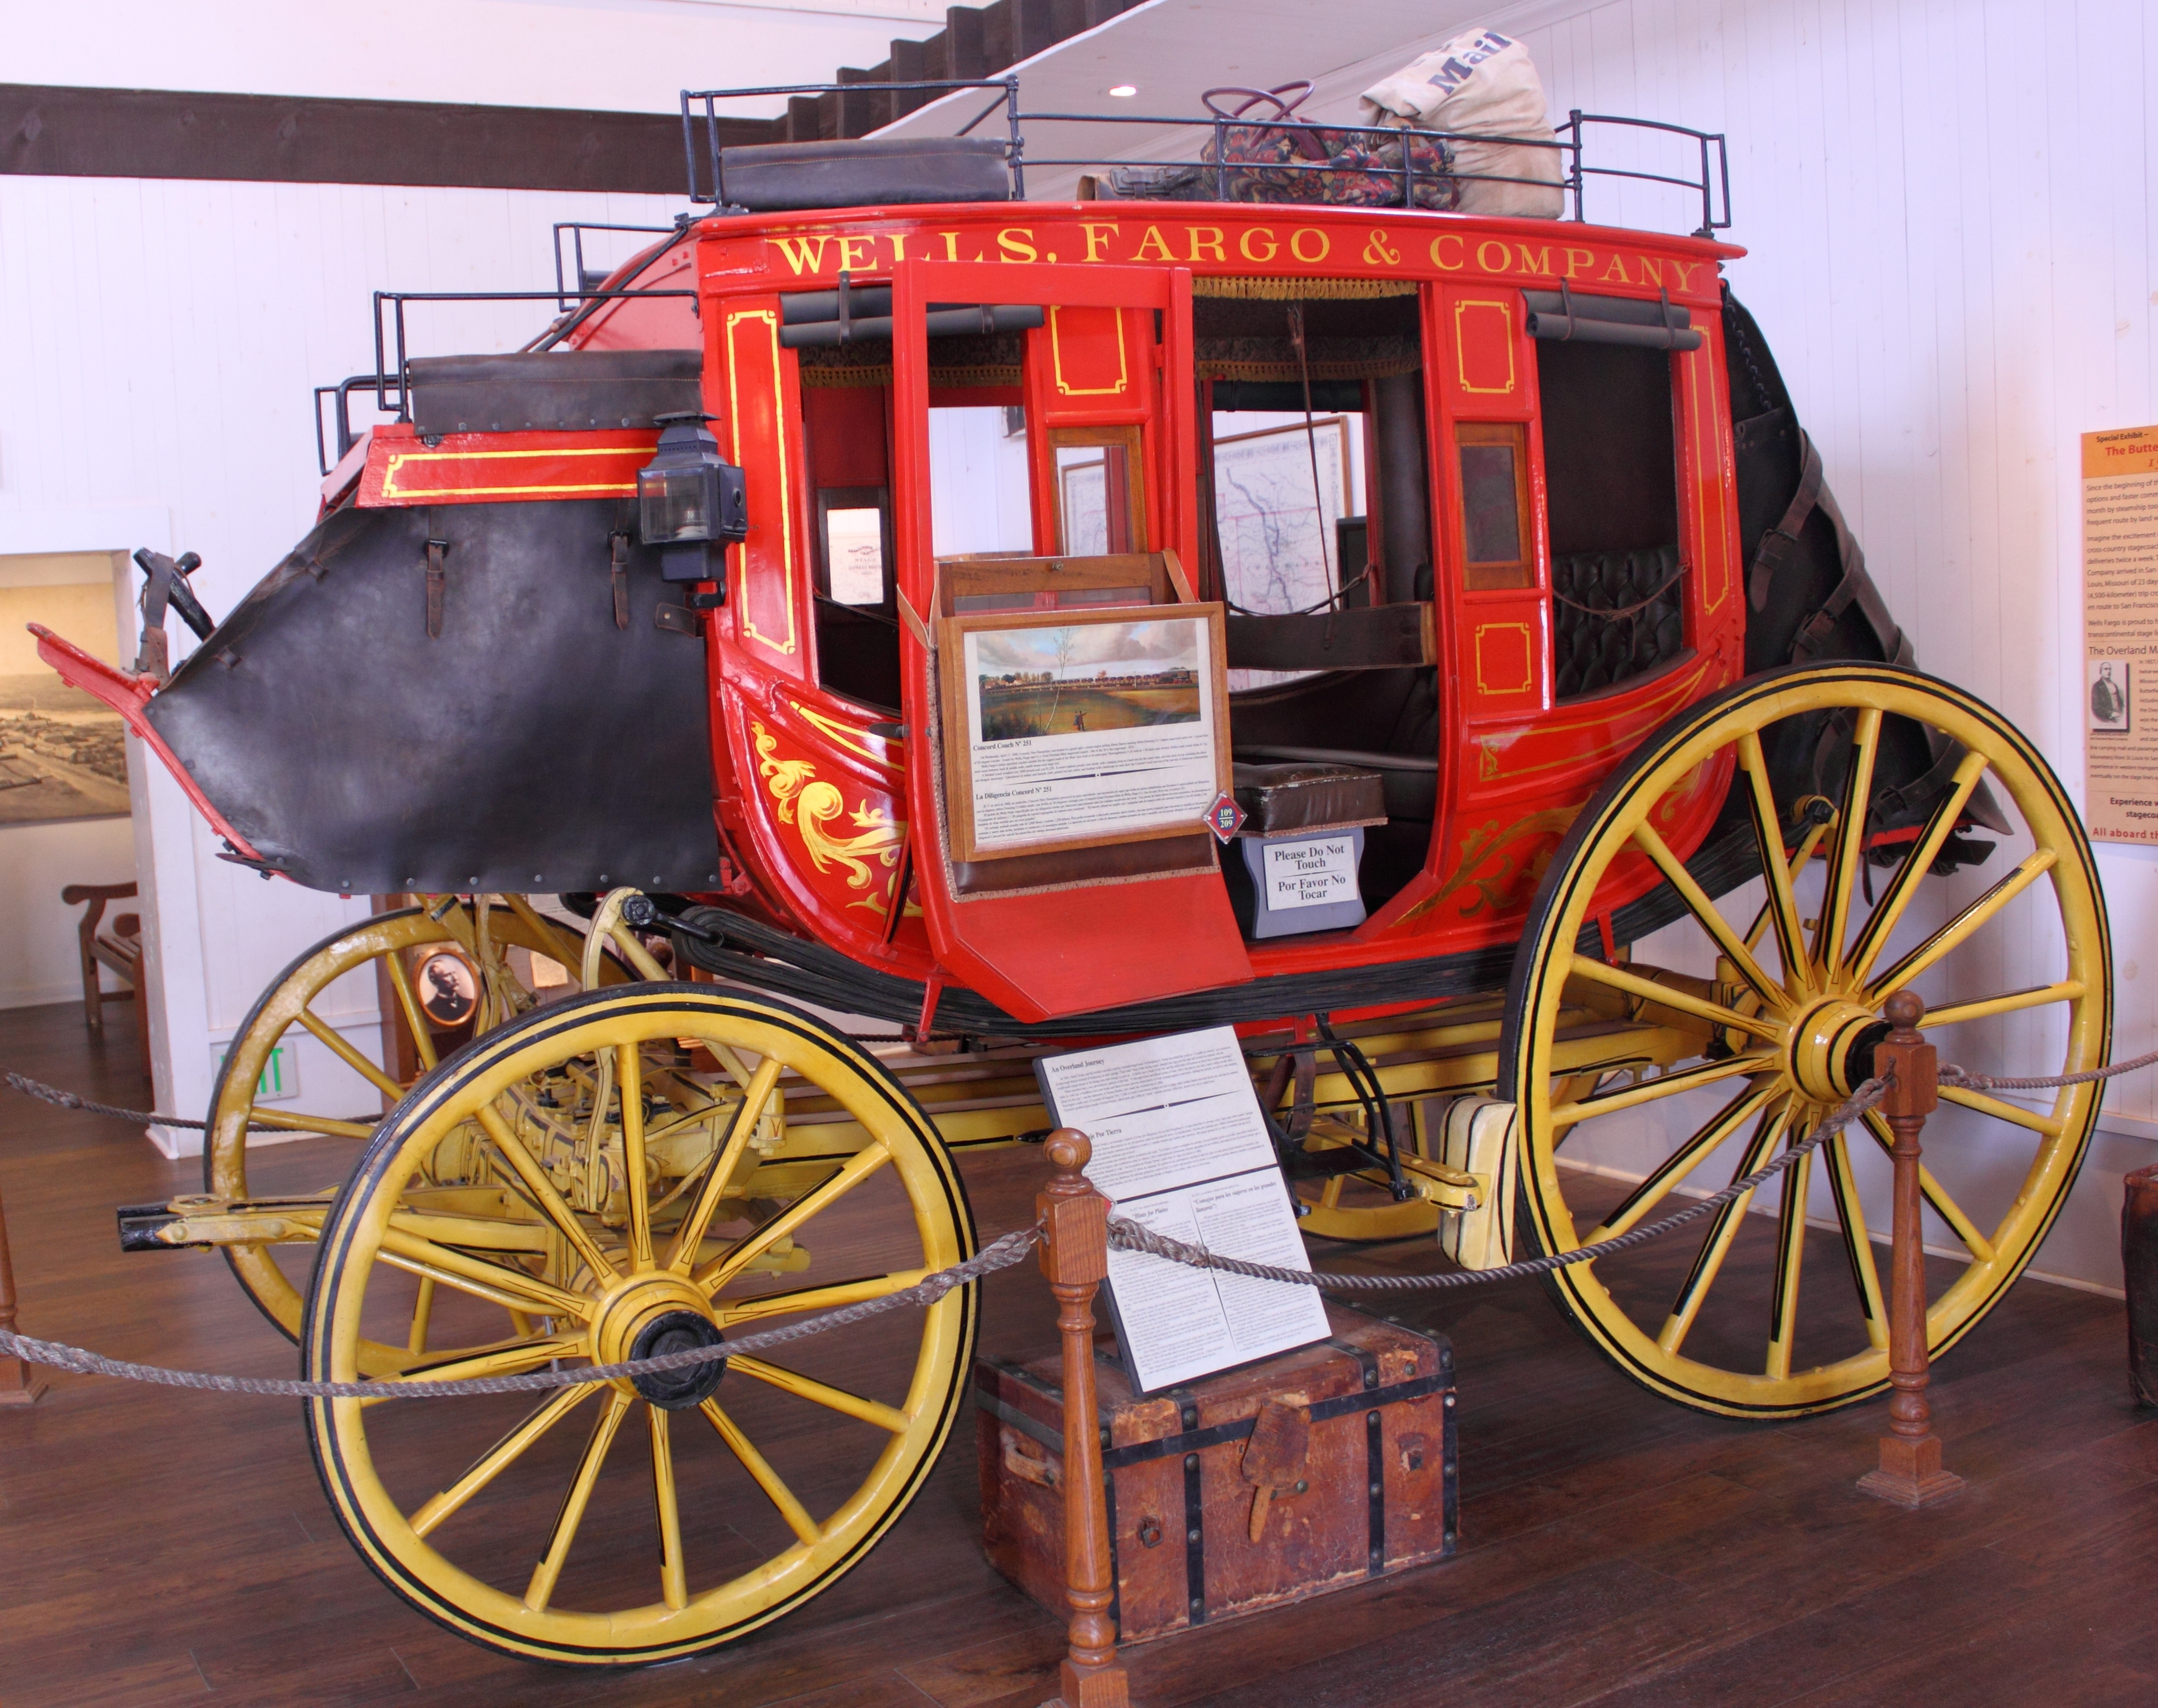 Concord stagecoach No. 251 in Wells Fargo livery. Front and back boots have leather covers. Displayed at the Seeley Stable Museum, Old Town San Diego, California. Photo taken on April 26, 2010.